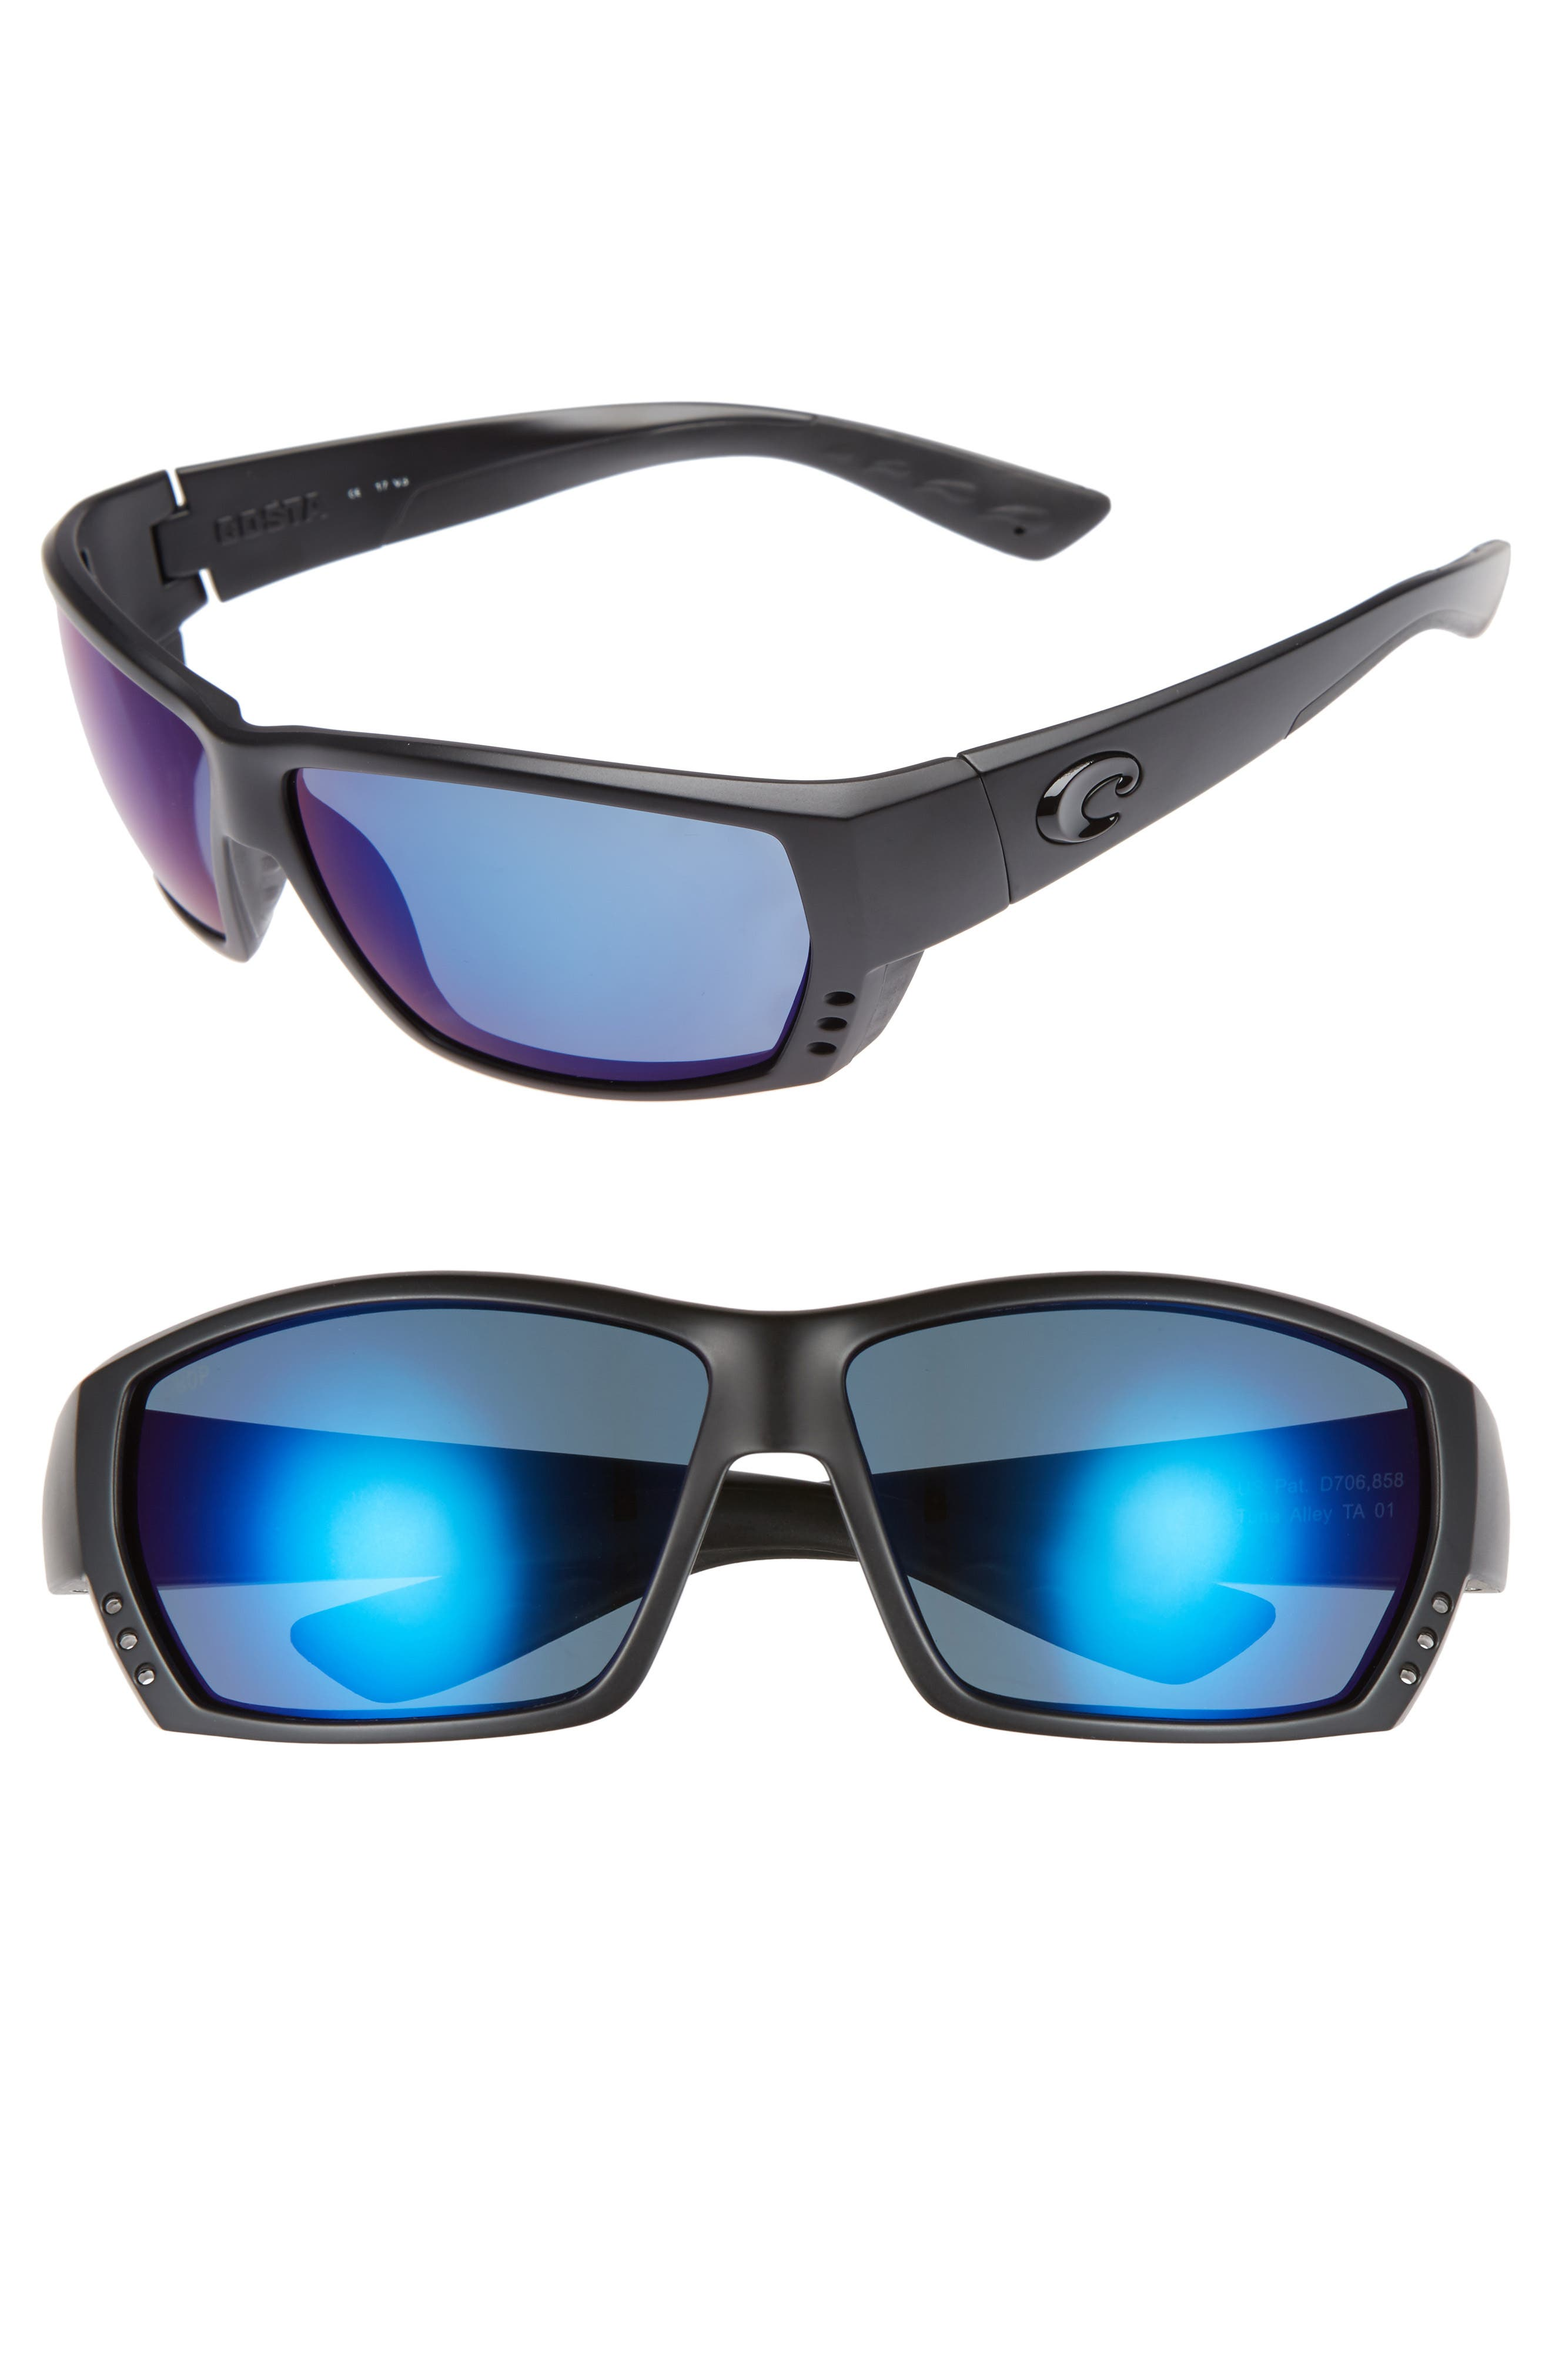 Tuna Alley 60mm Polarized Sunglasses,                             Main thumbnail 1, color,                             Blackout/ Blue Mirror